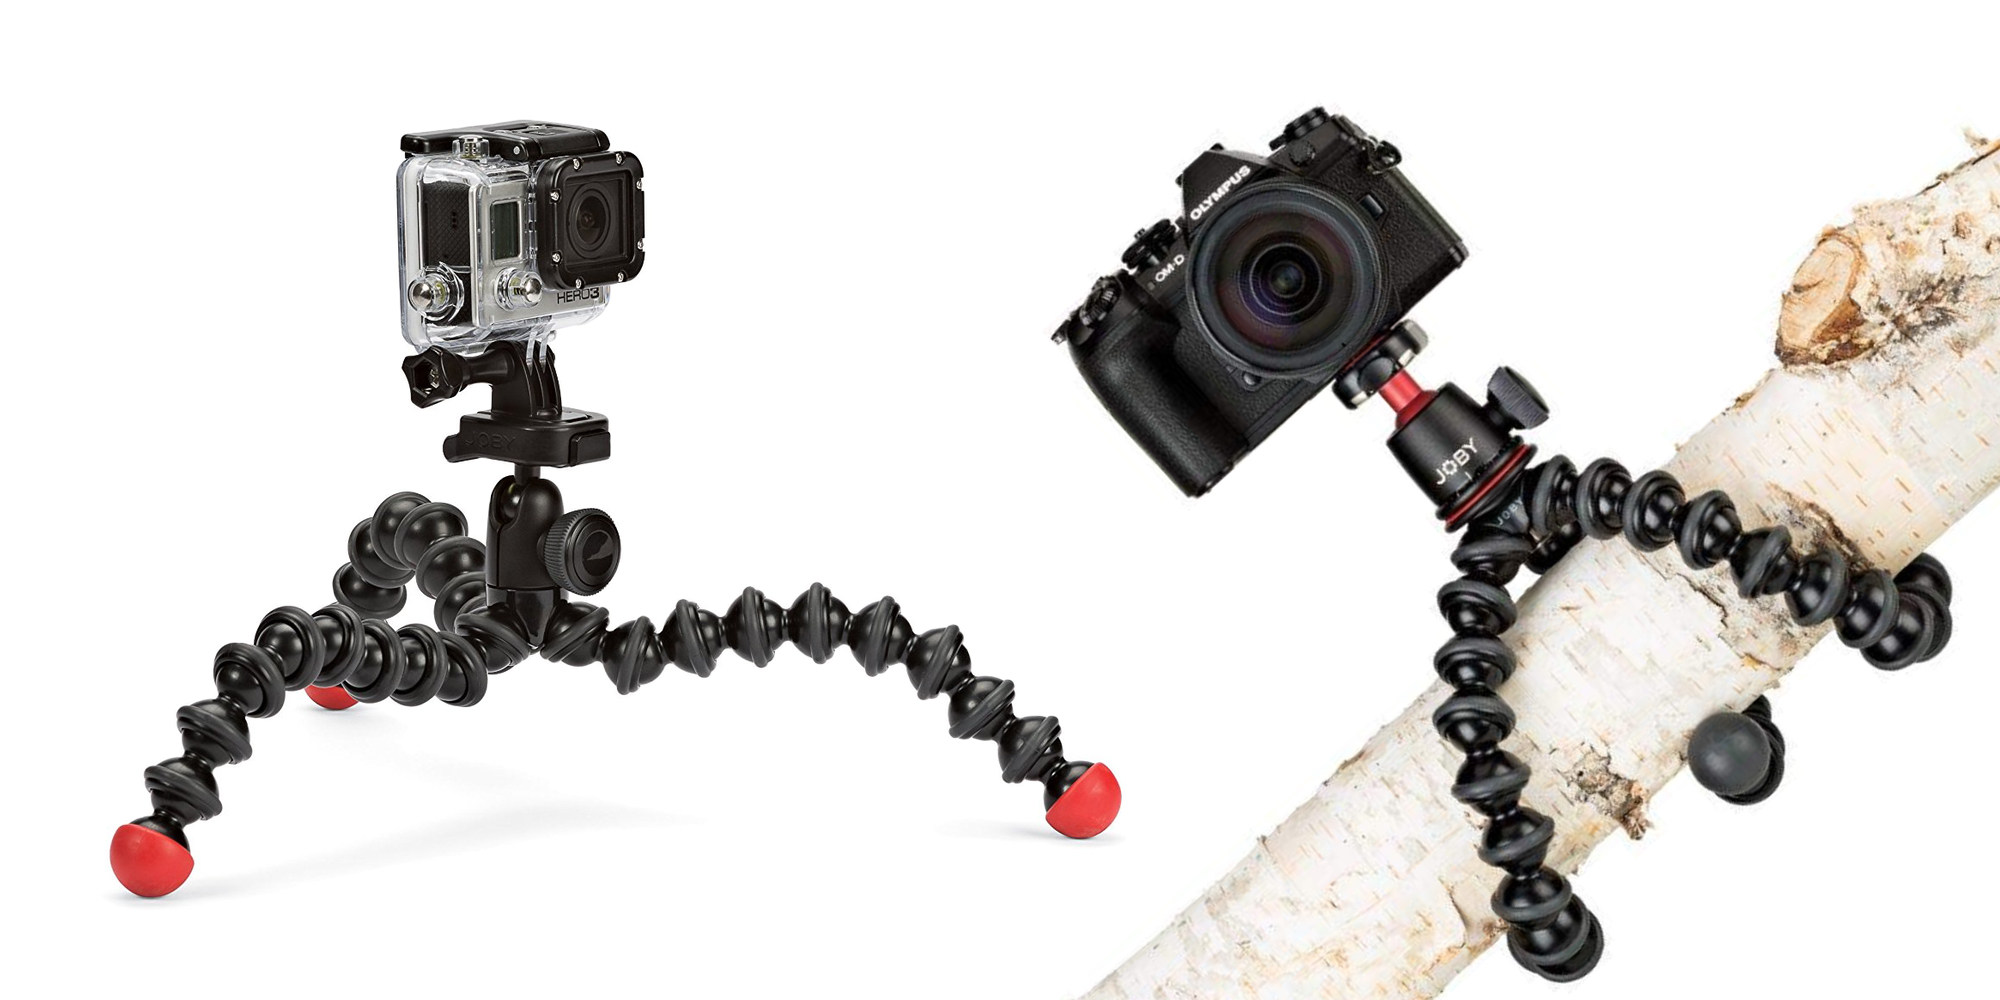 Pair your GoPro or DSLR with Joby's GorillaPod Tripods from $16 shipped at Amazon